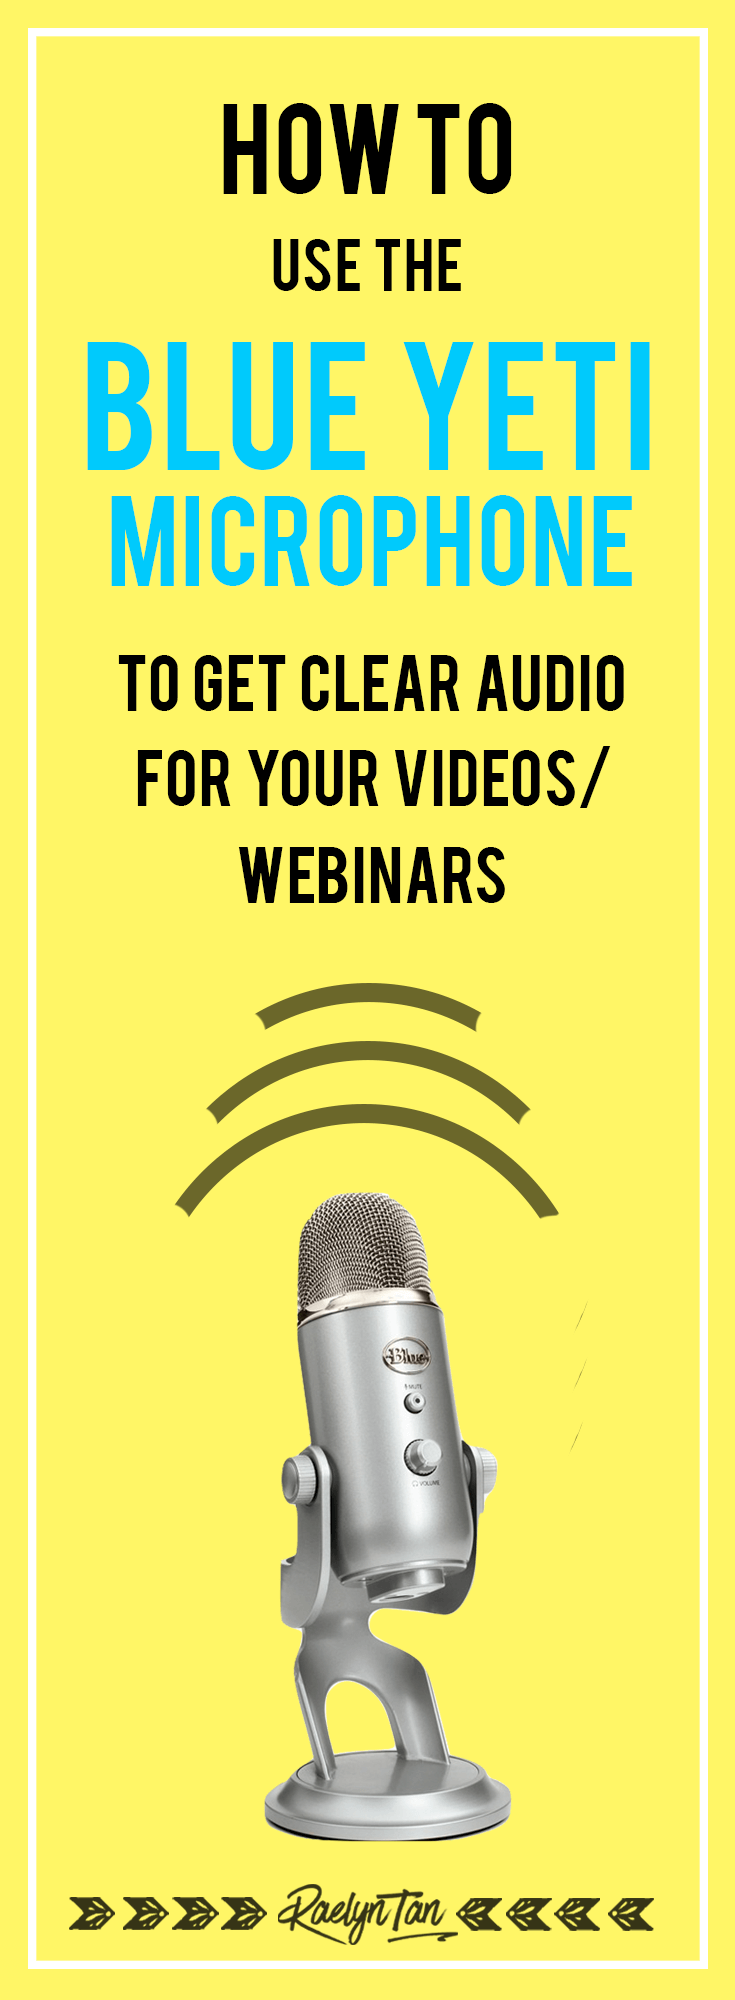 Blue Yeti Tutorial: How To Use The Blue Yeti Microphone To Get Clear